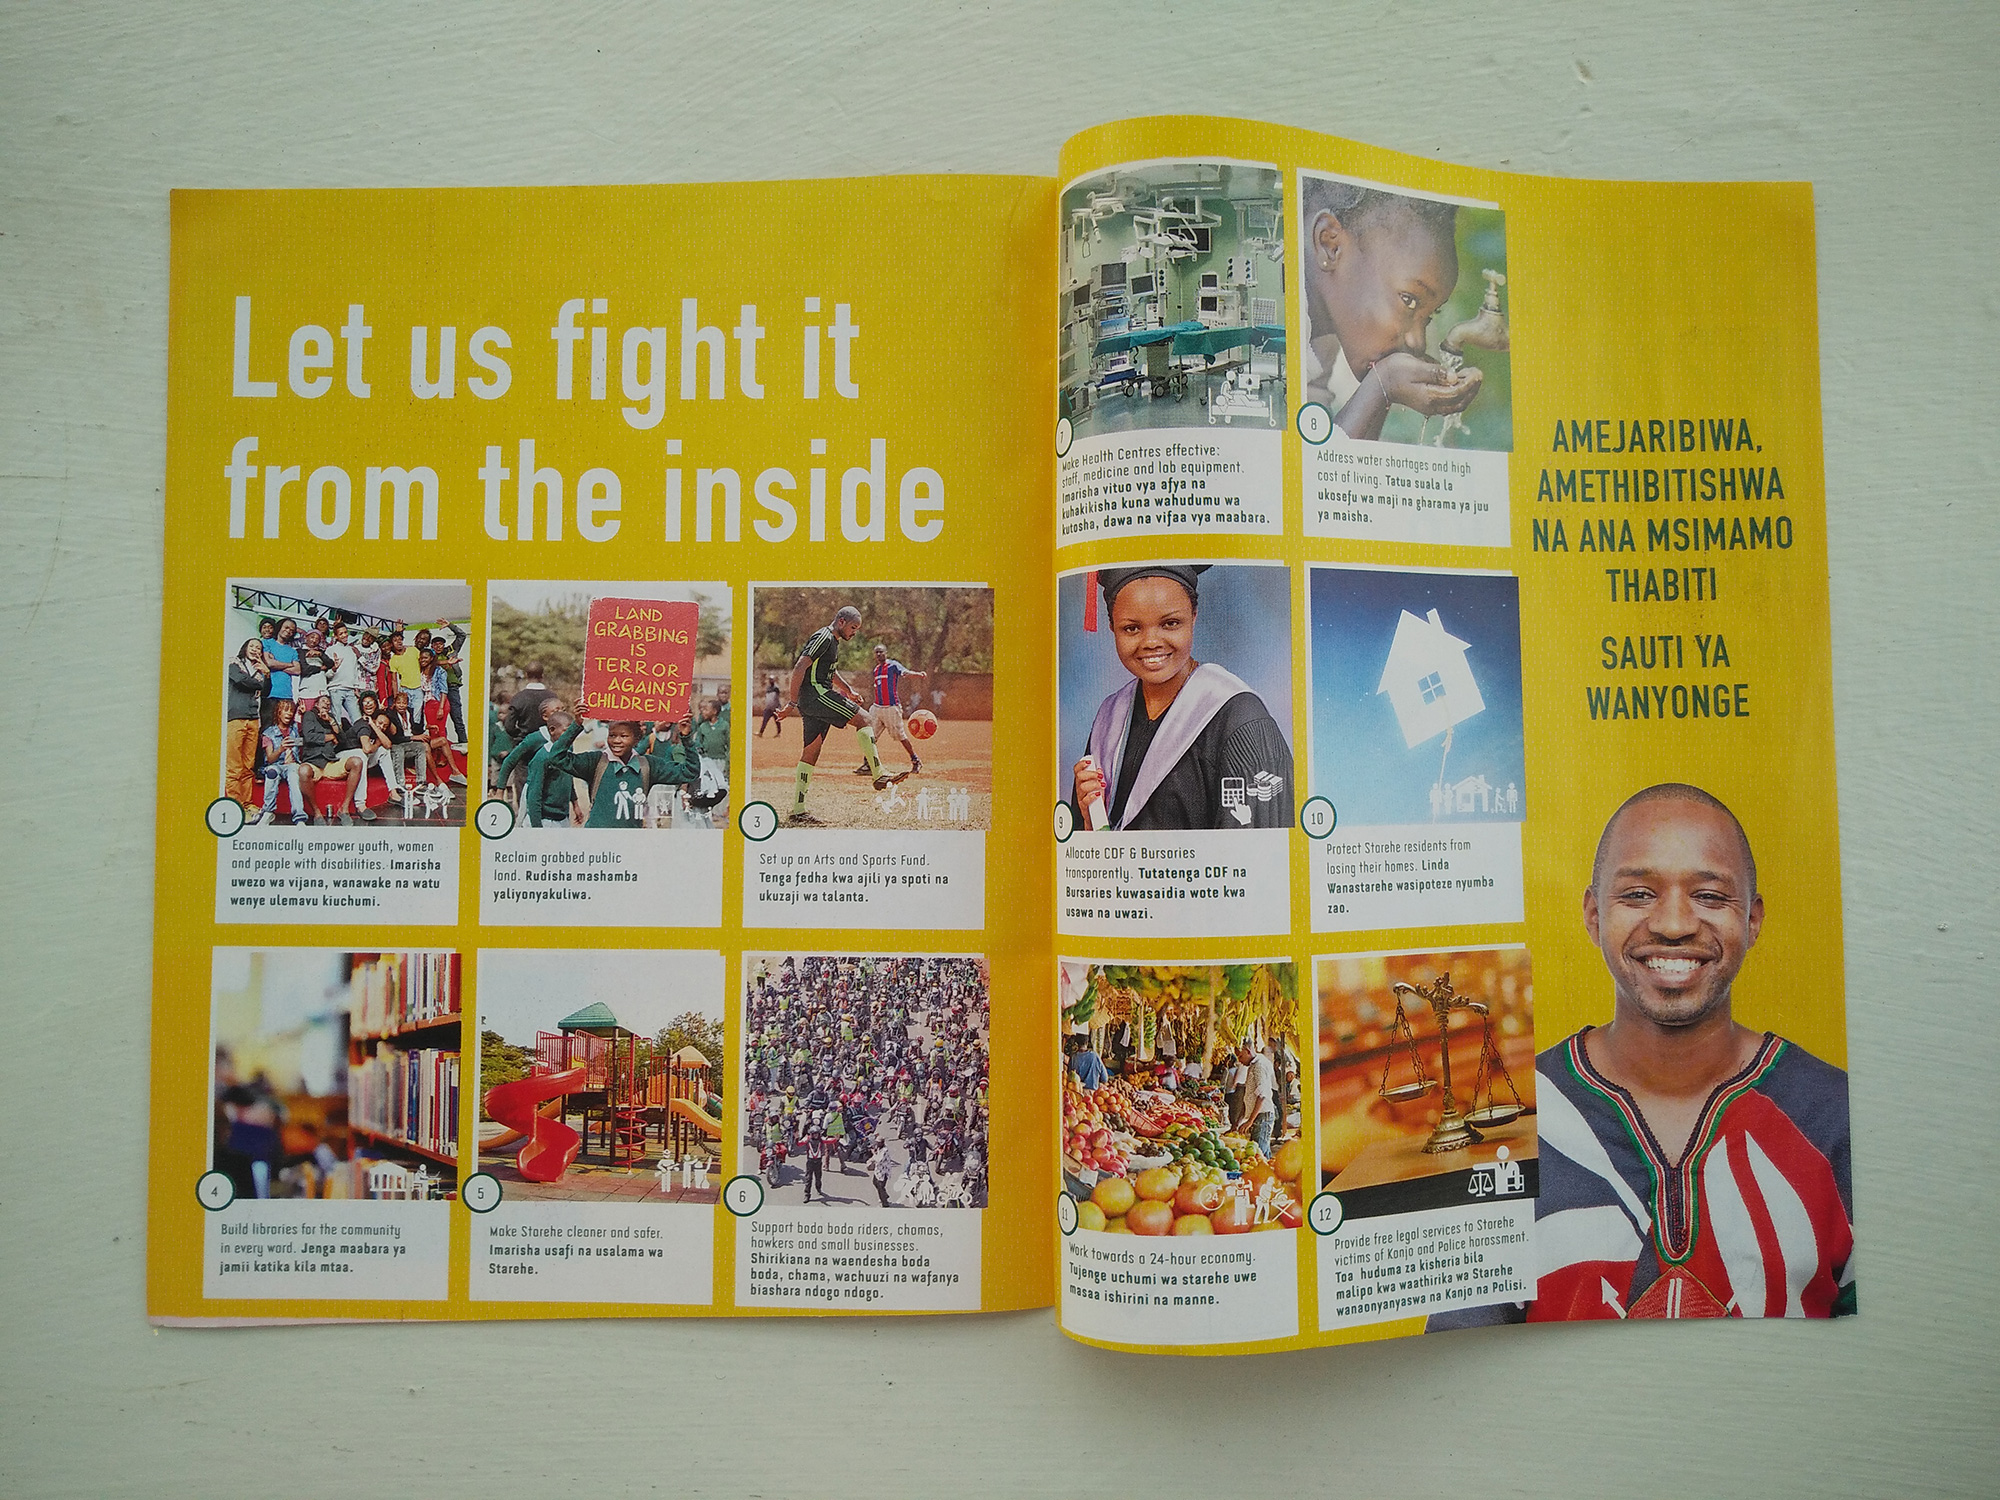 Inner page campaign promise of Boniface Mwangi's profile